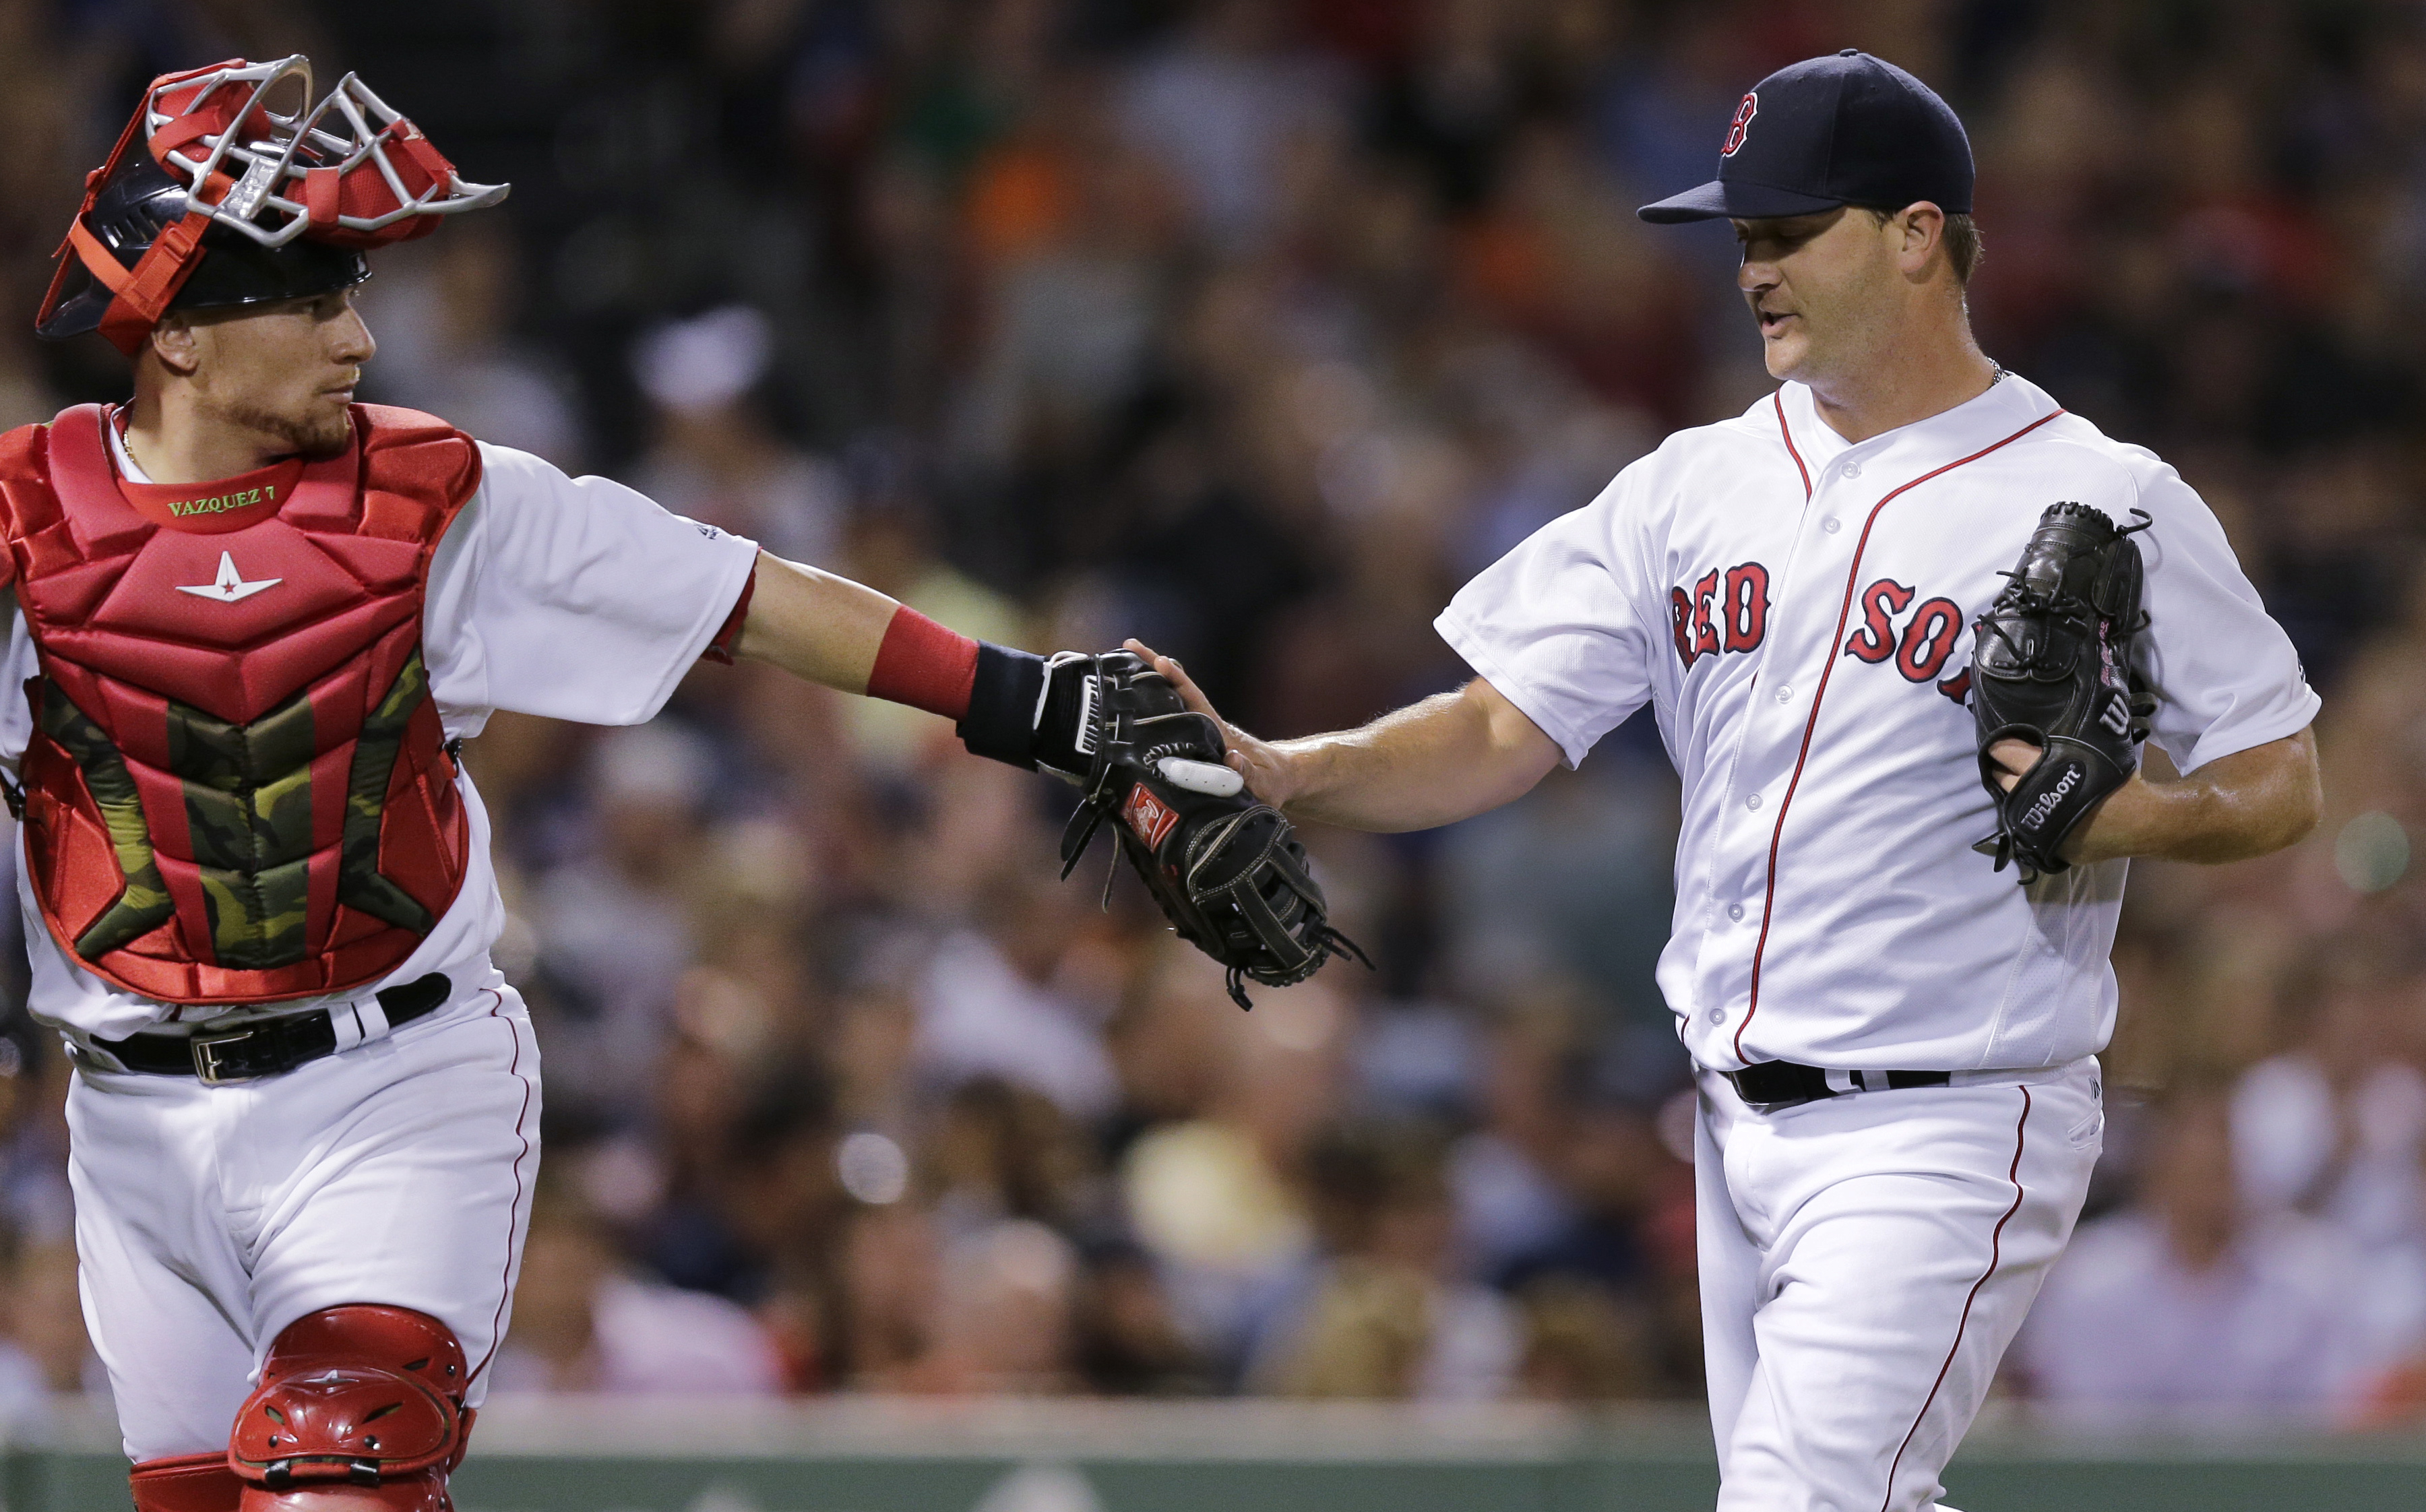 Boston Red Sox starting pitcher Steven Wright, right, is congratulated by catcher Christian Vazquez after a quick sixth inning on the mound during a baseball game against the Baltimore Orioles at Fenway Park, Wednesday, June 15, 2016, in Boston. (AP Photo